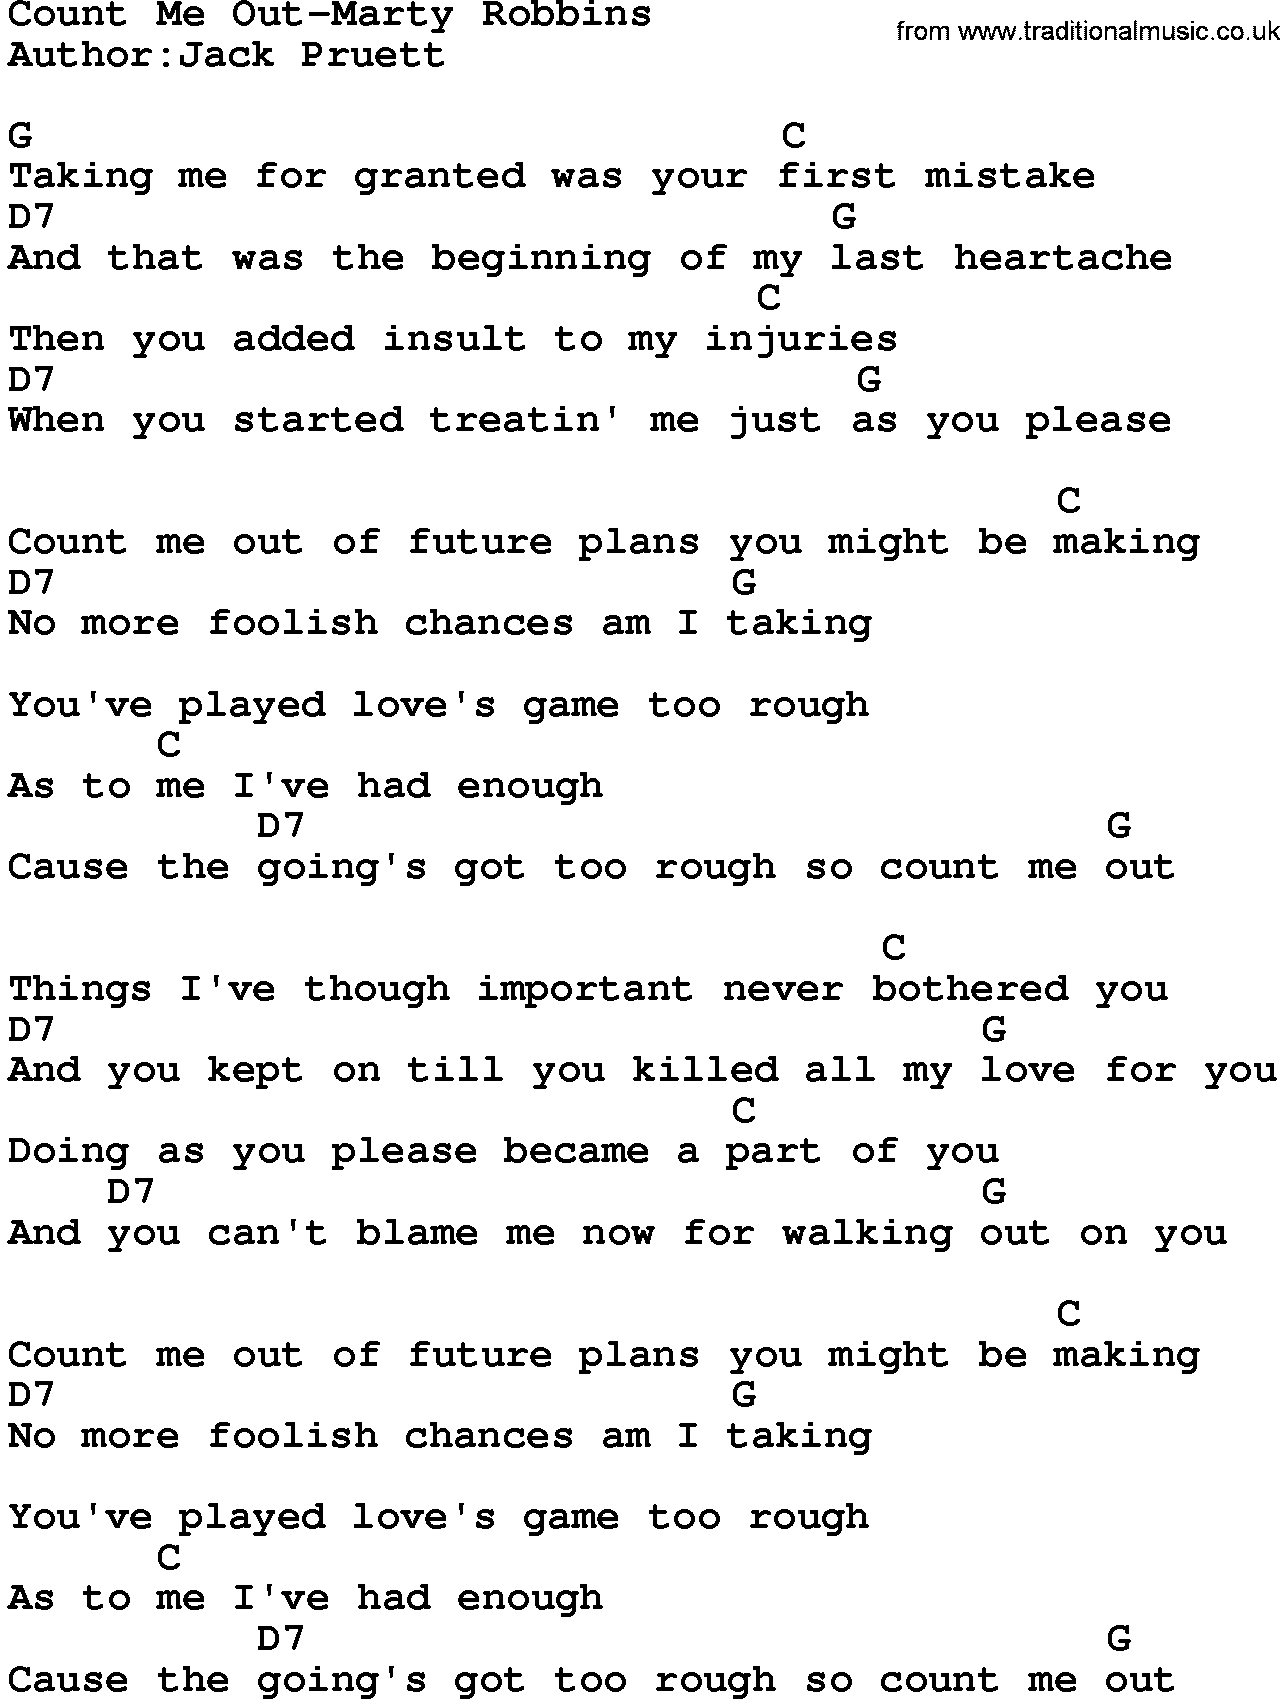 Count On Me Chords Country Musiccount Me Out Marty Robbins Lyrics And Chords